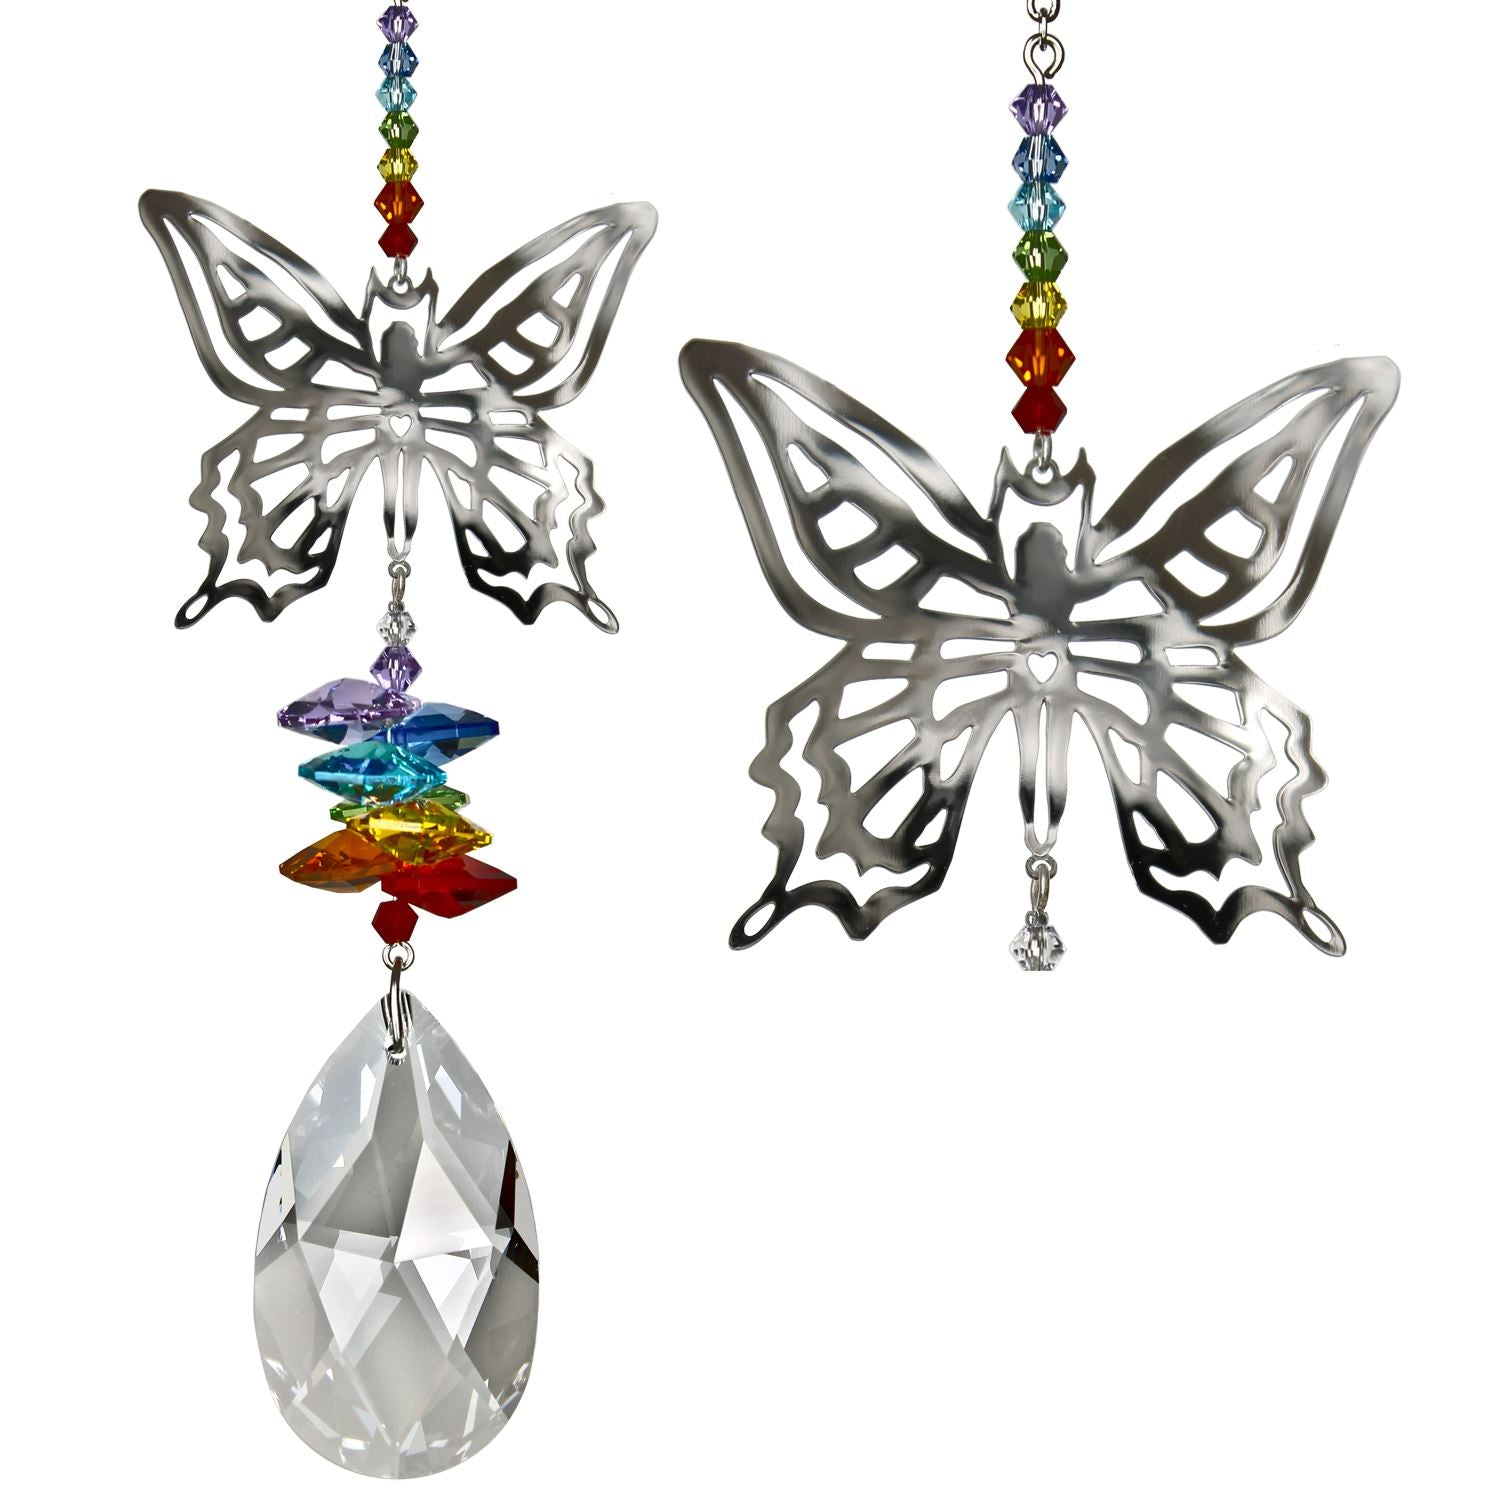 Crystal Fantasy Butterfly suncatcher